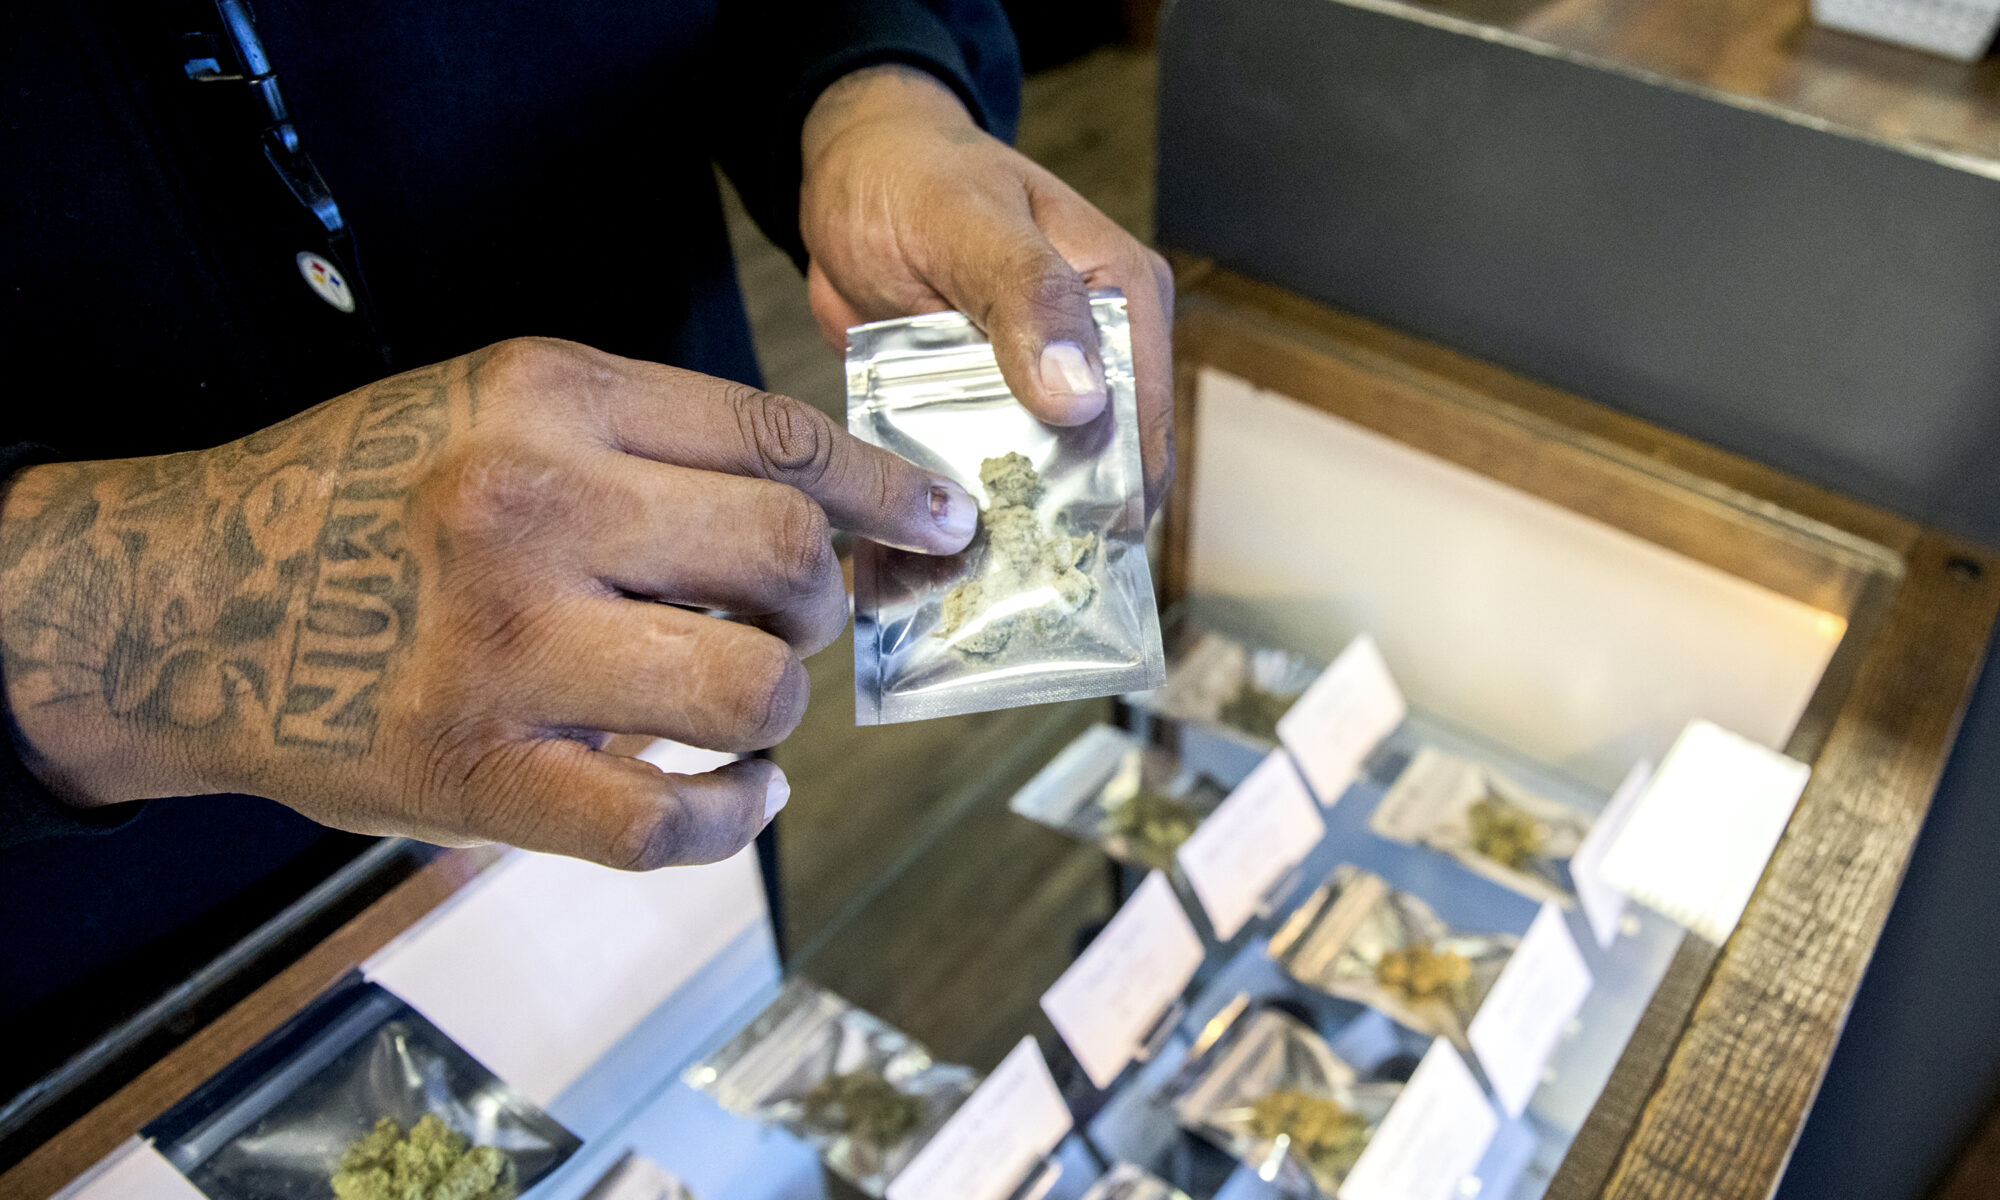 Man's hands holding and showing marijuana products above a sales counter